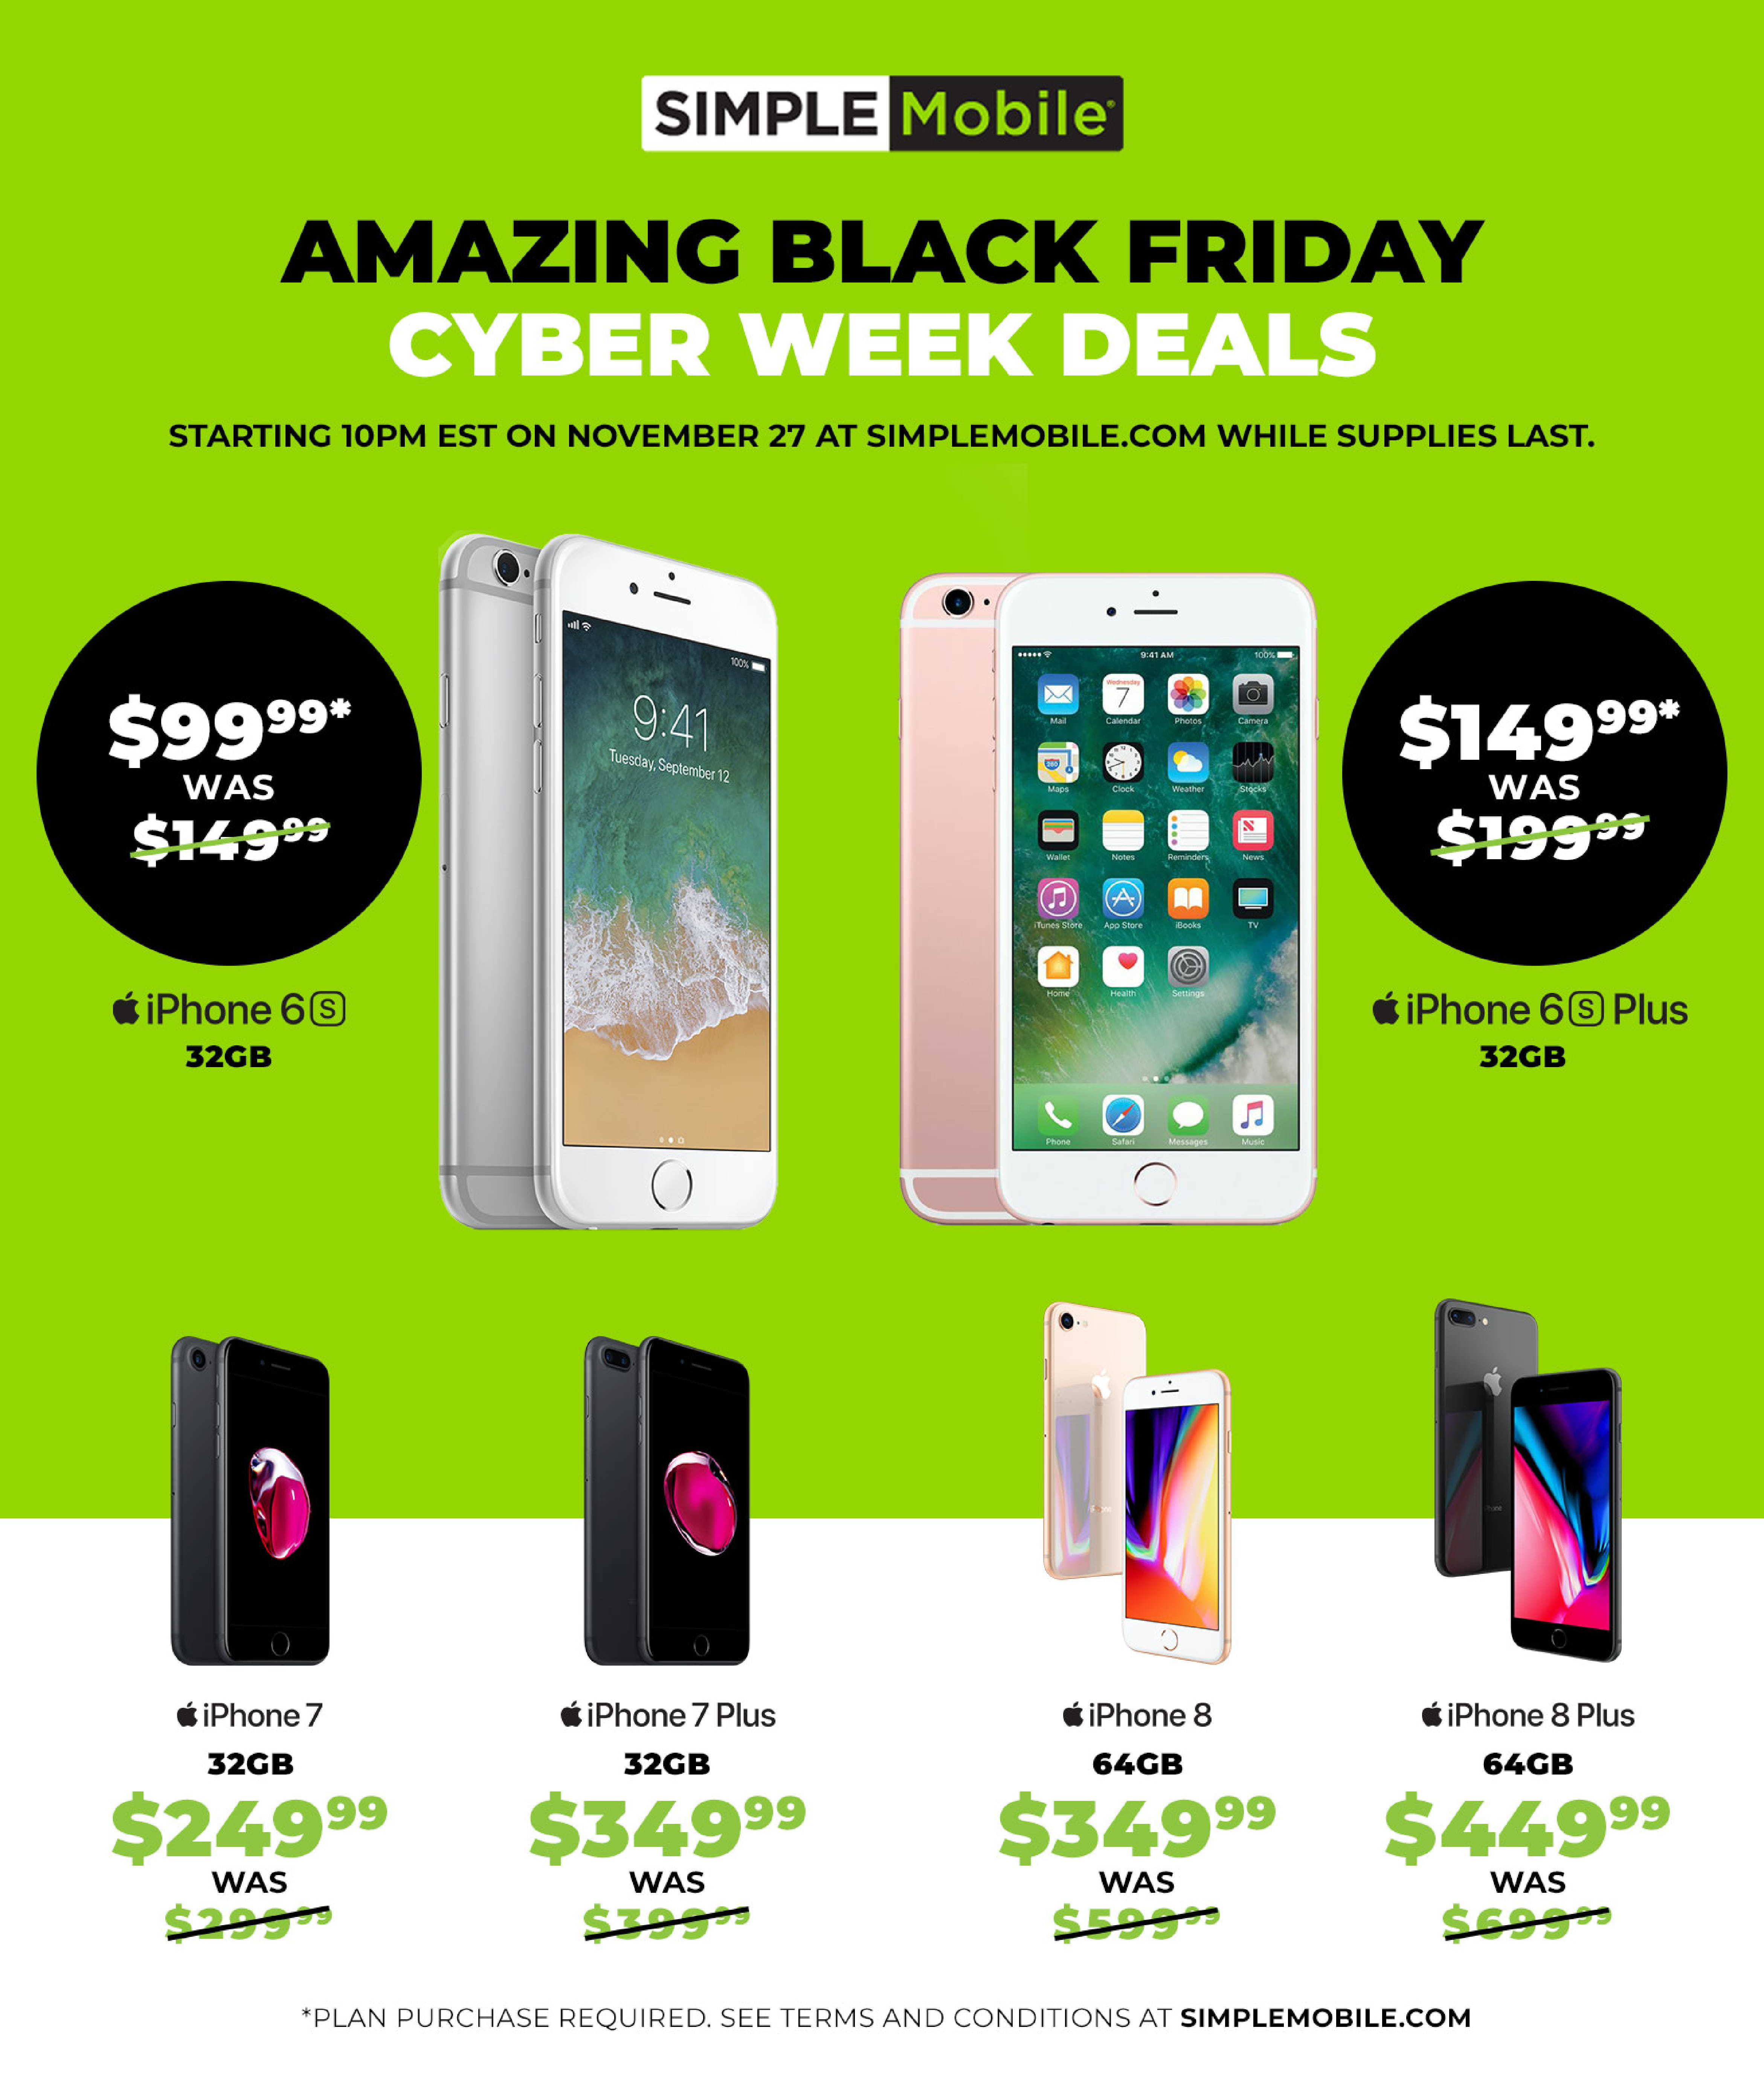 SIMPLE Mobile Black Friday Ads